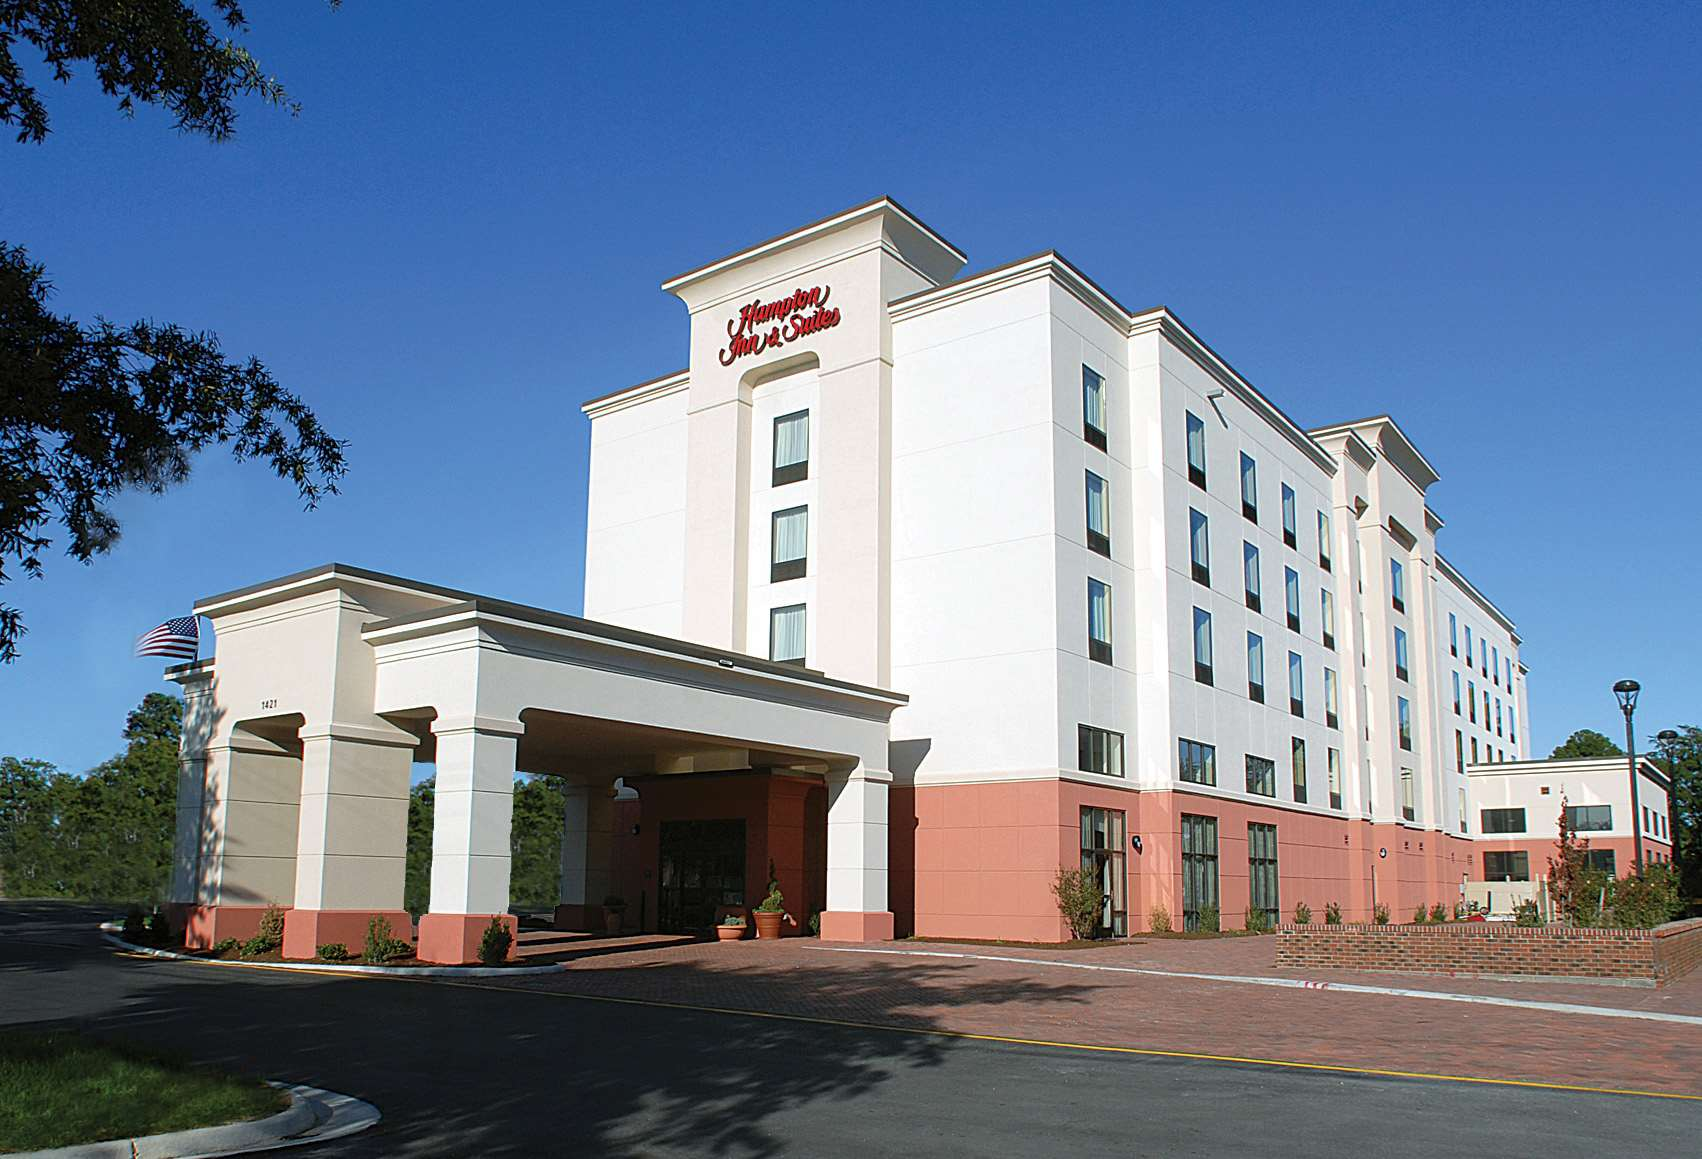 Hampton Inn & Suites Chesapeake-Battlefield Blvd. image 2